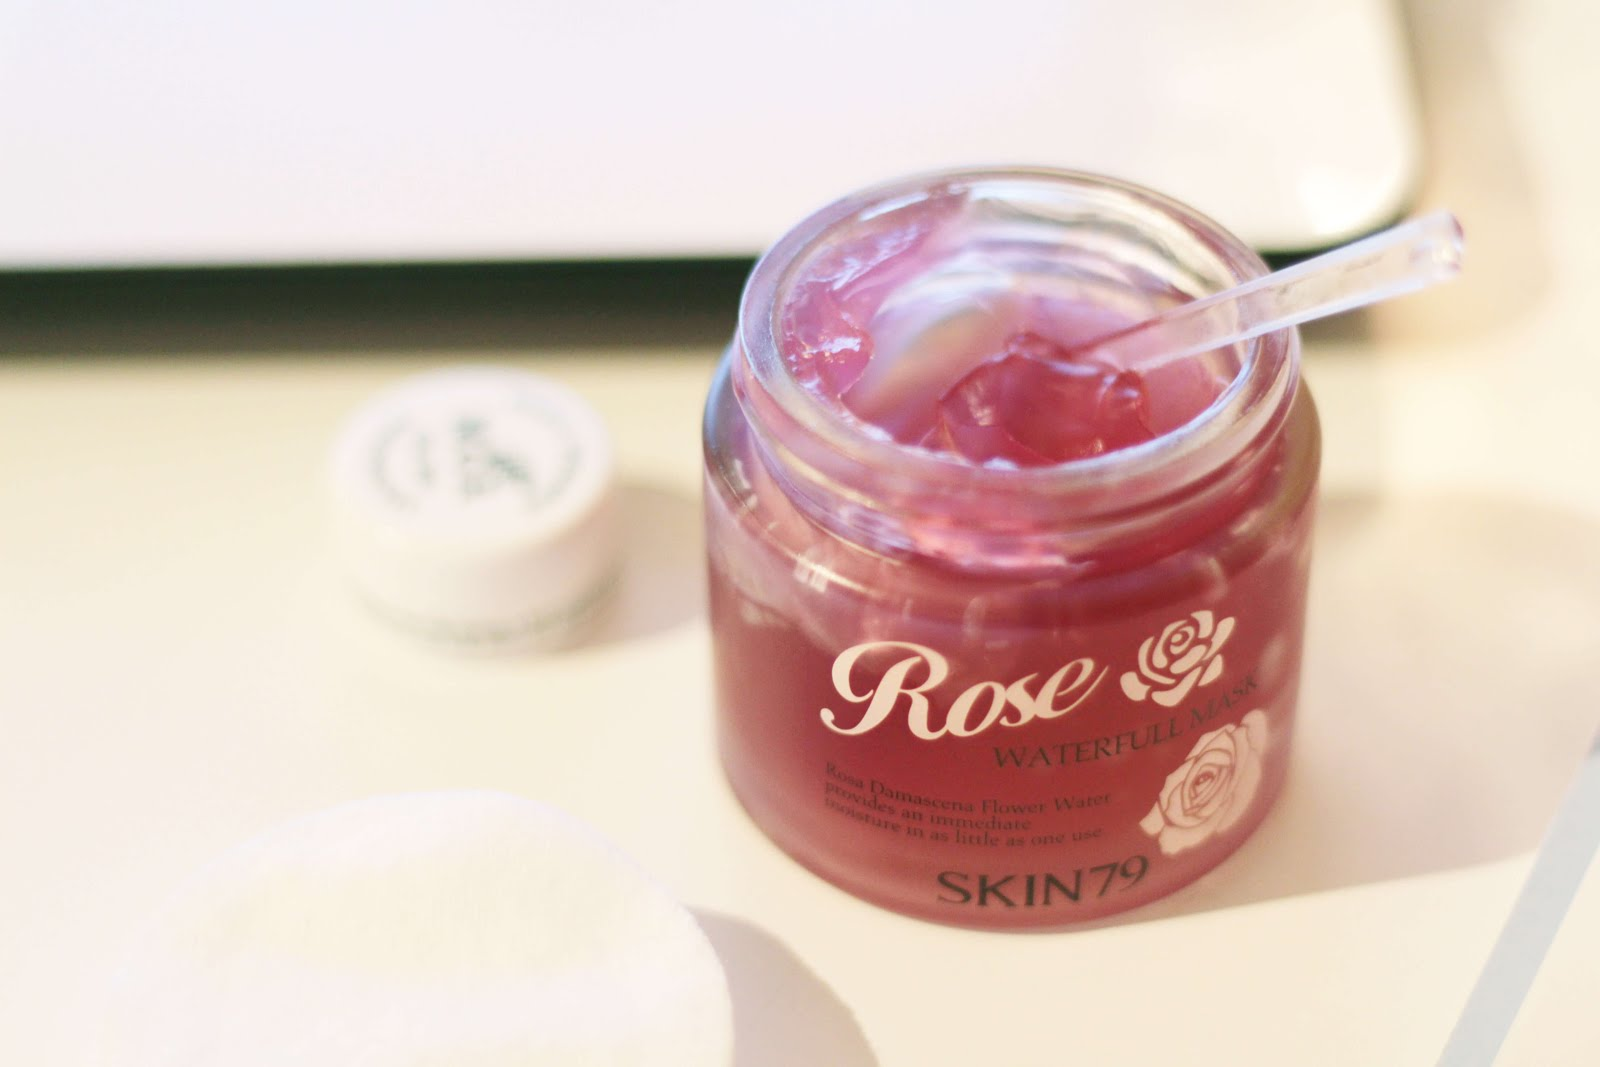 skin79 rose waterfull mask review product shot